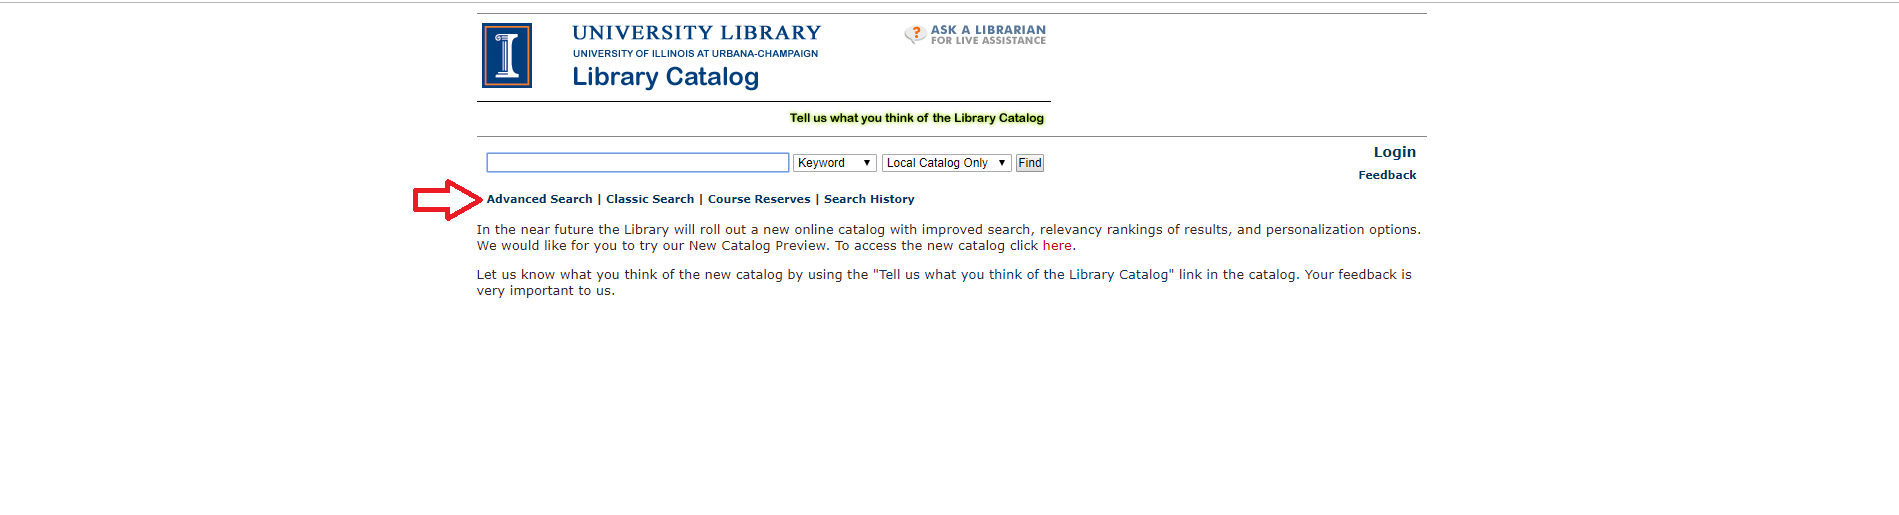 A red arrow points to the Advanced Search option on the Library Catalog homepage